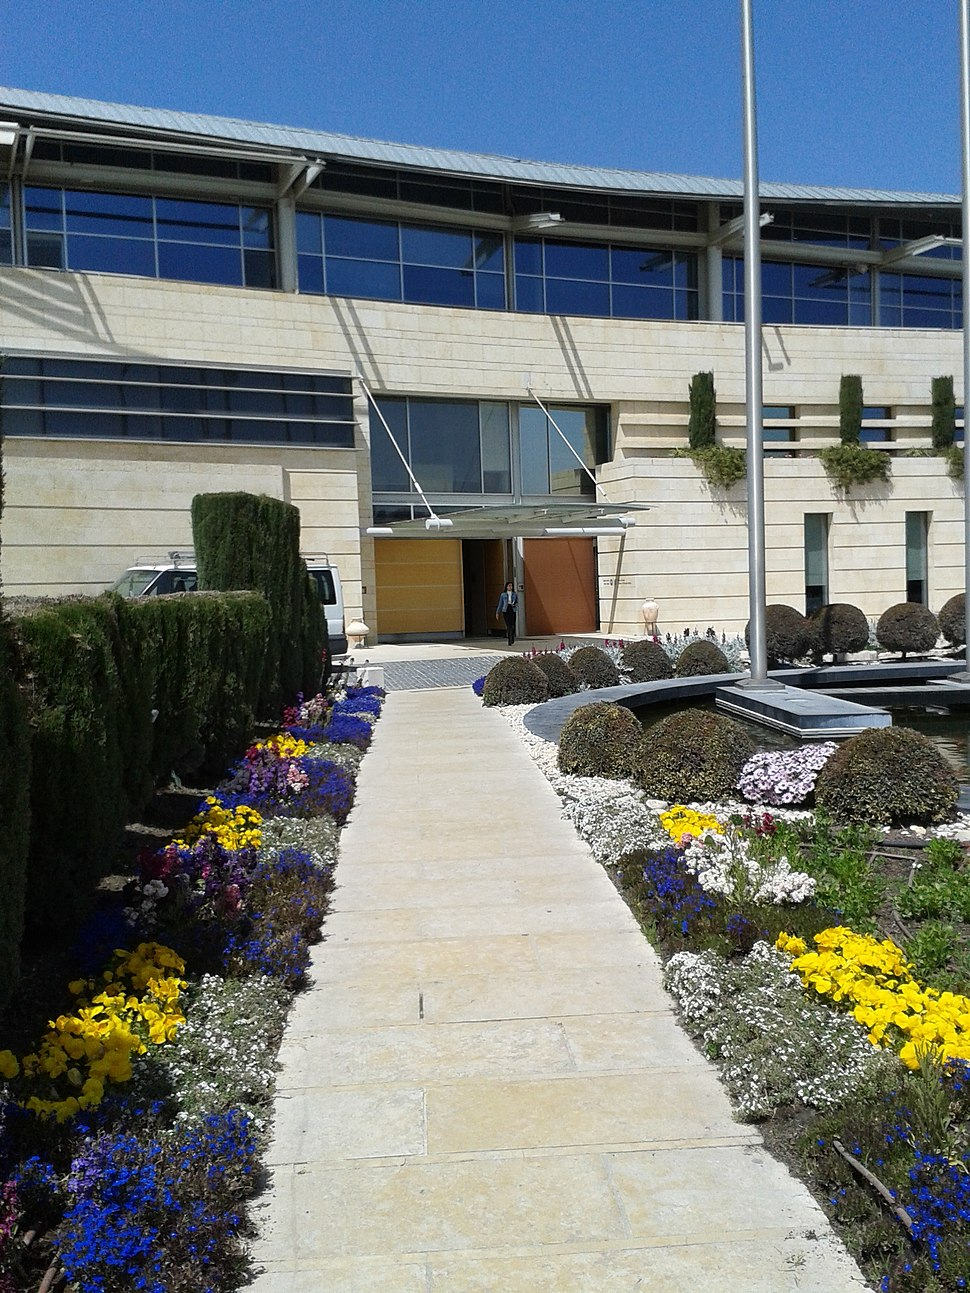 Israel's Ministry of Foreign Affairs Ceremonial Gate (5)